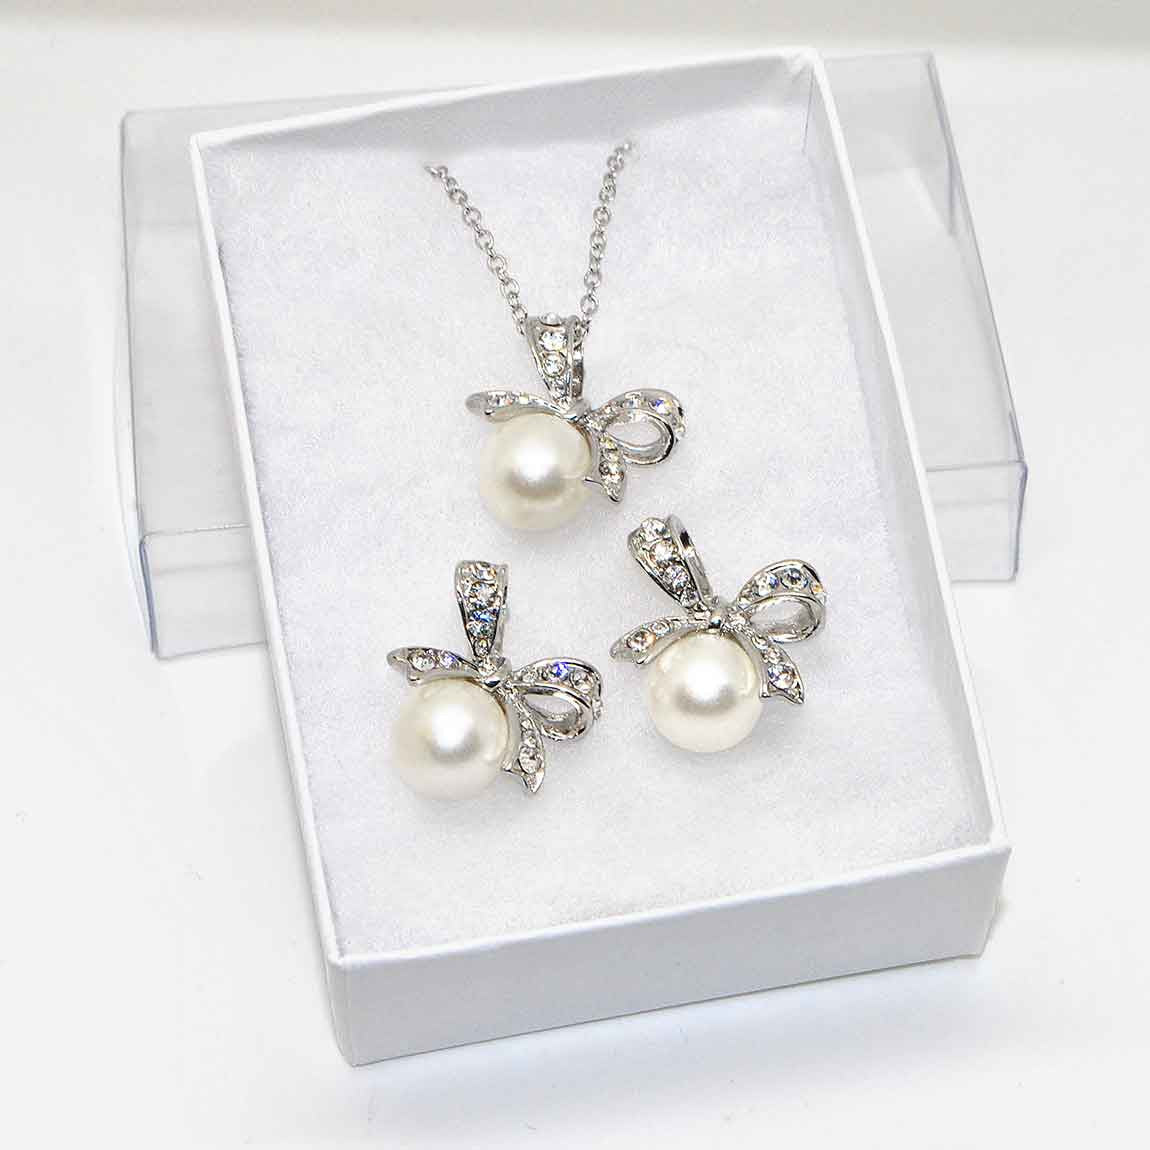 Katie's Style Simulated Pearl Crystal Bow Ribbon Pendant Necklace Earrings Set